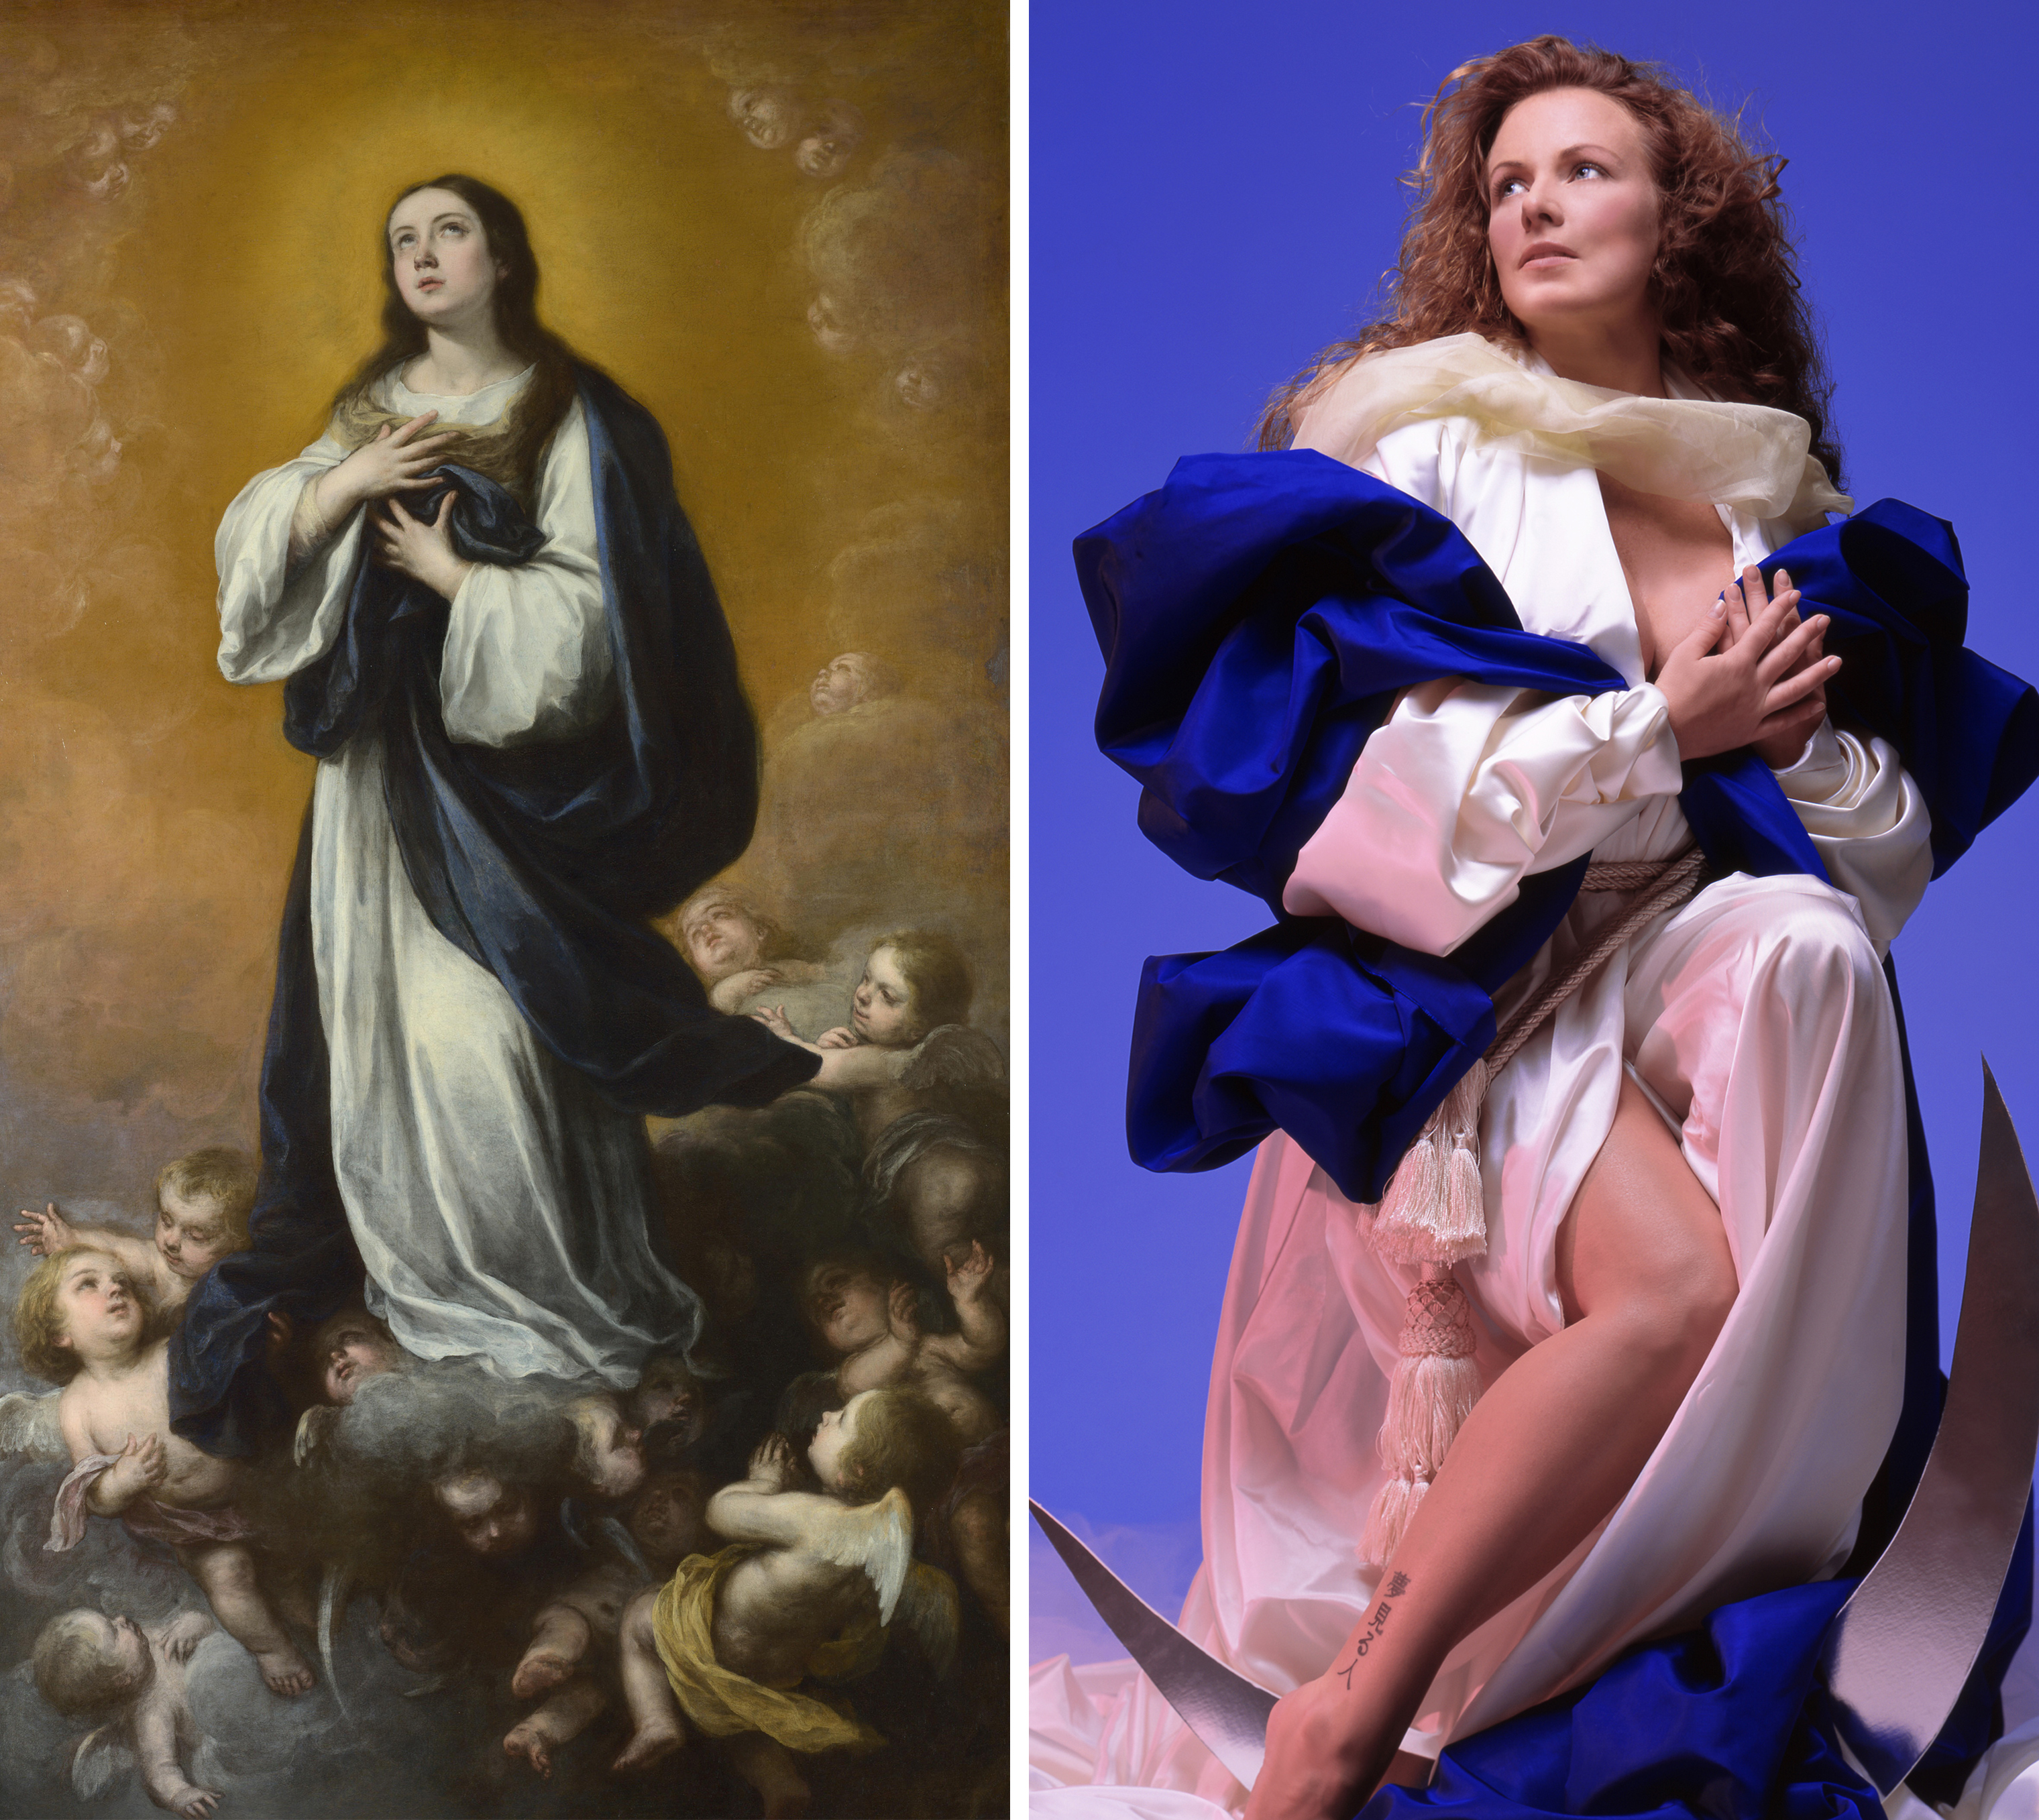 Left: Bartolomé Esteban Murillo and studio, The Immaculate Conception of the Virgin, 17th century (Getty Images); Right: Nika Nesgoda, Immaculatum Conceptionem, 2002